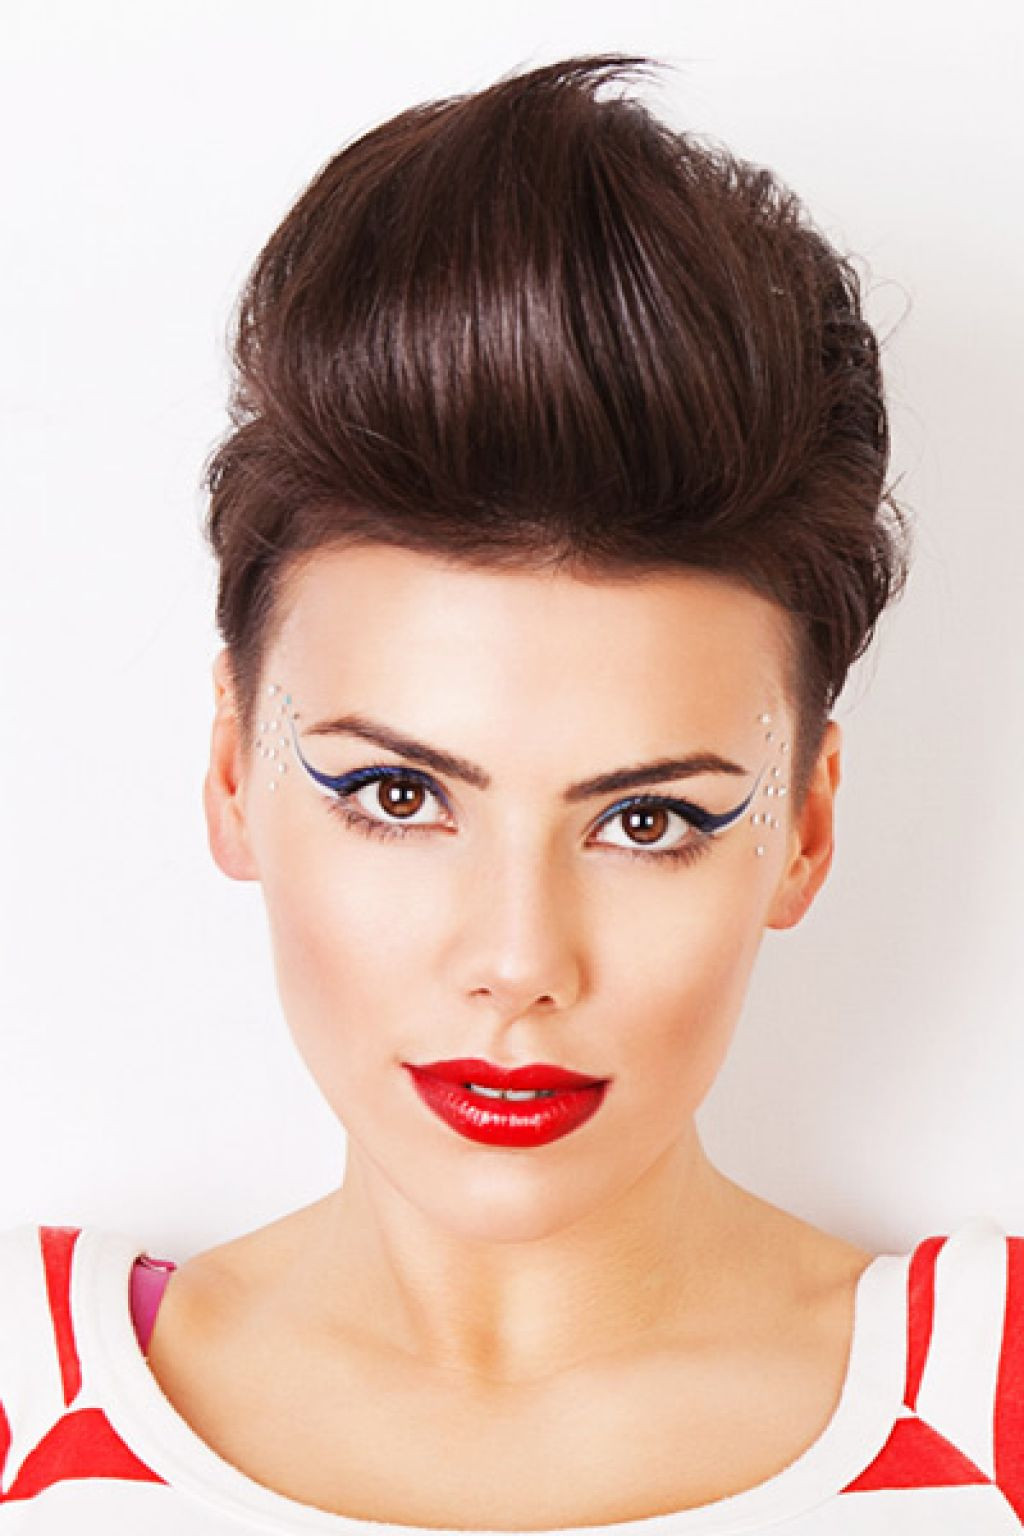 Quiff Hairstyle Female  Daring Women Quiff Hairstyles To Make a Statement